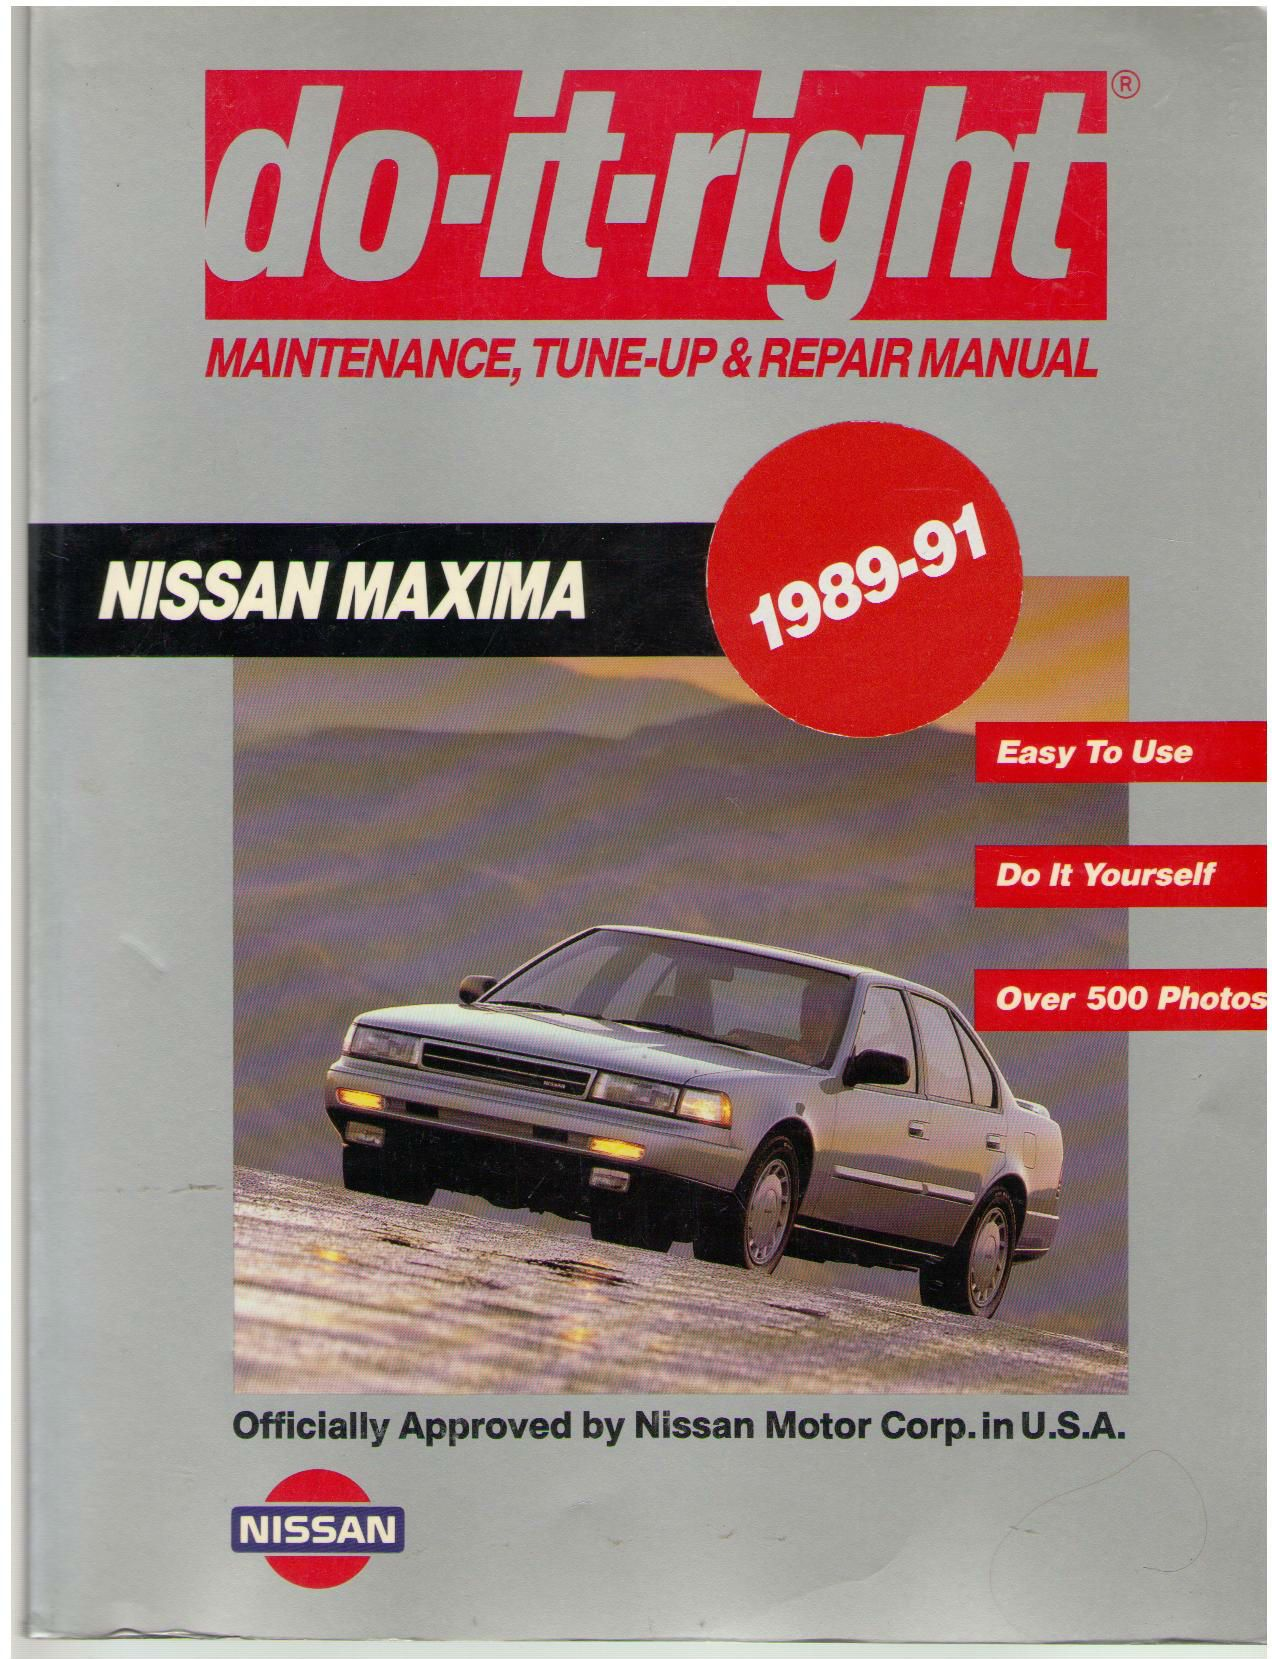 Do-It-Right Maintenance, Tune-Up & Repair Manual Nissan 1989-90 Maxima